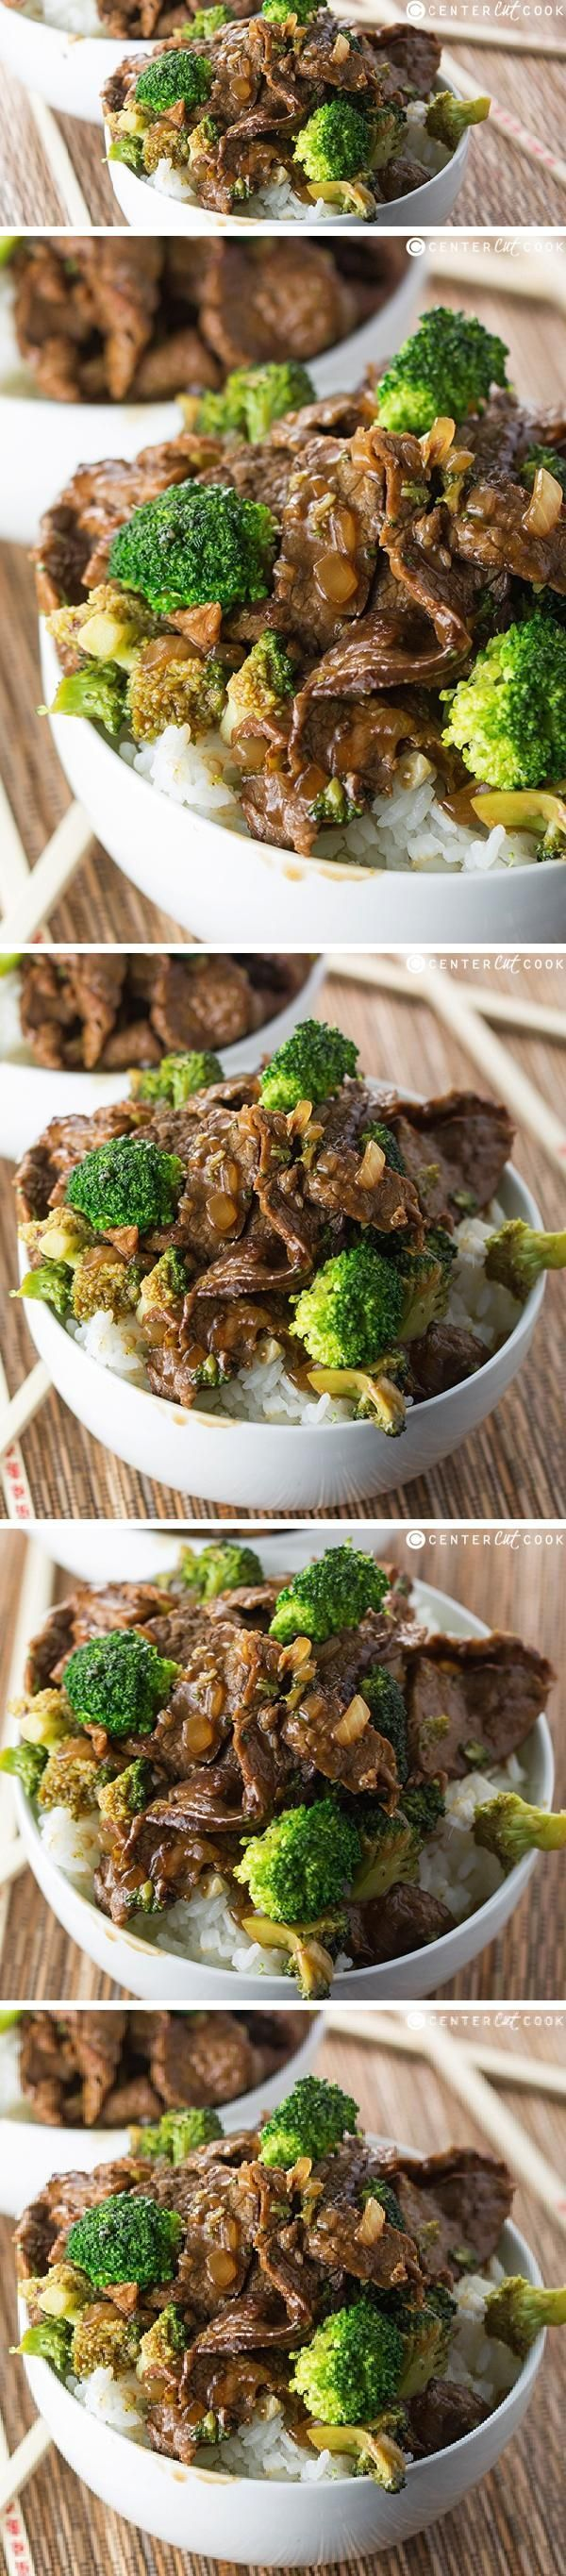 BROCCOLI and BEEF served over rice is a classic STIR-FRY recipe that will satisfy your craving for Chinese food! There's no need for Panda Express when you can enjoy this Broccoli and Beef right at home.